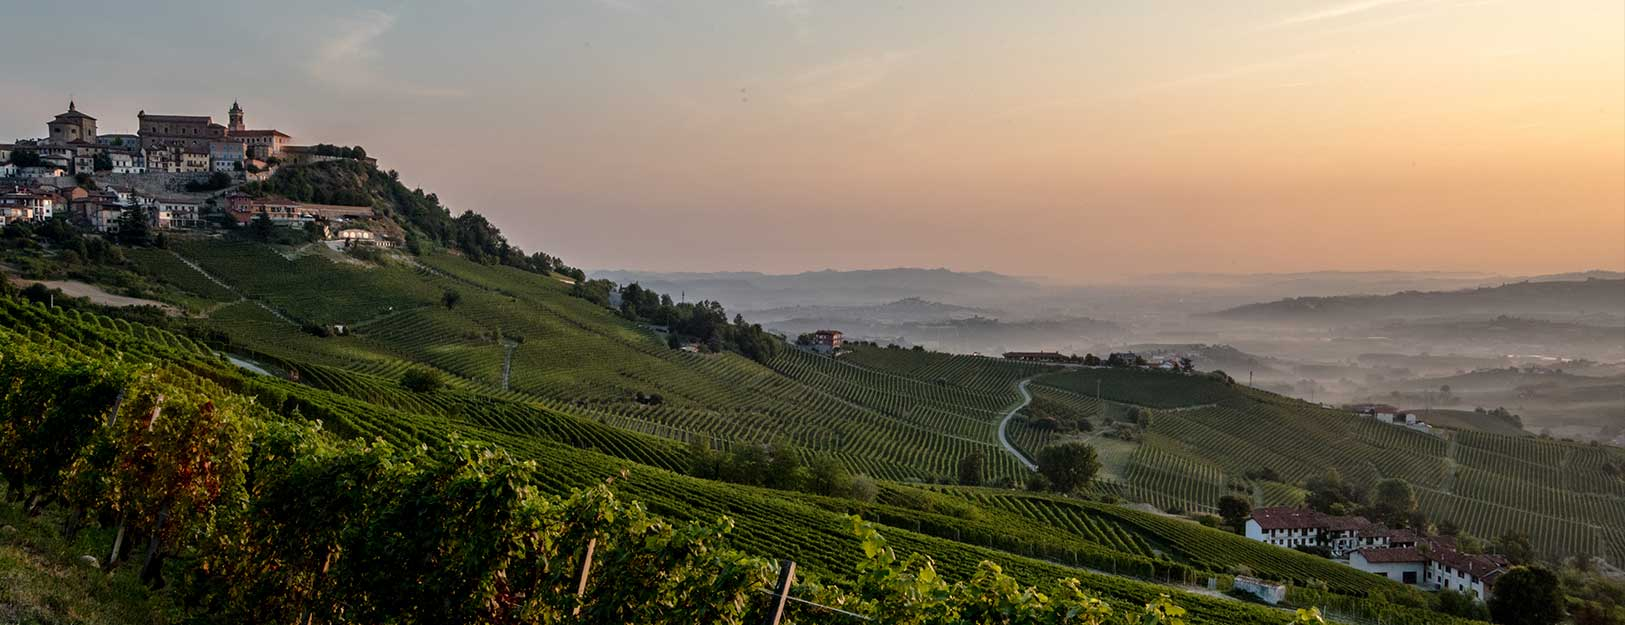 Postcard from Langhe